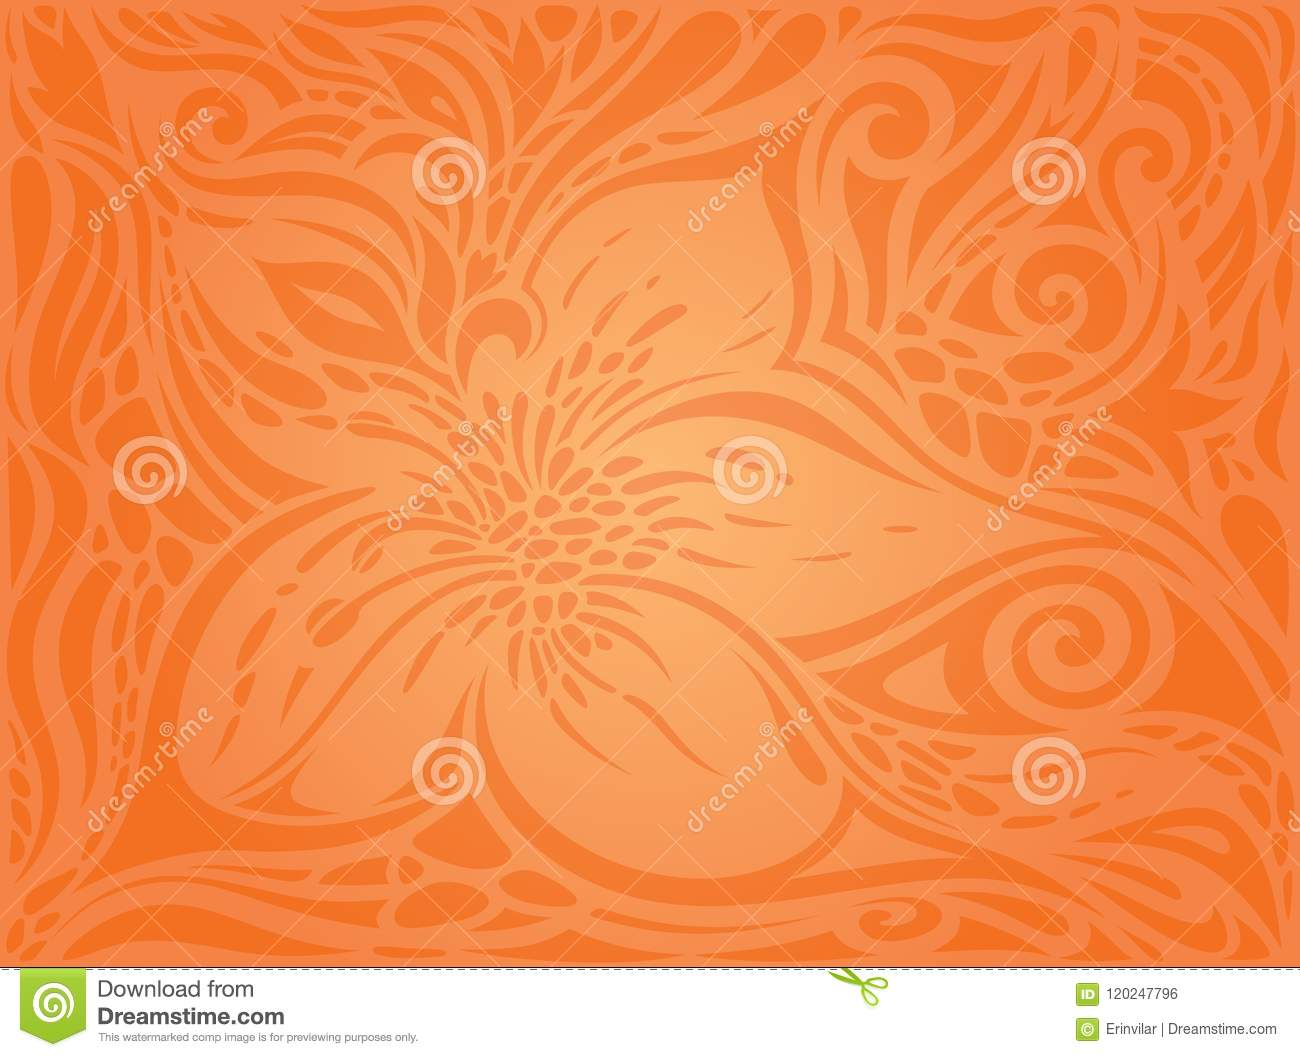 flowers orange retro style colorful floral wallpaper background flowers orange retro style colorful floral wallpaper background 120247796